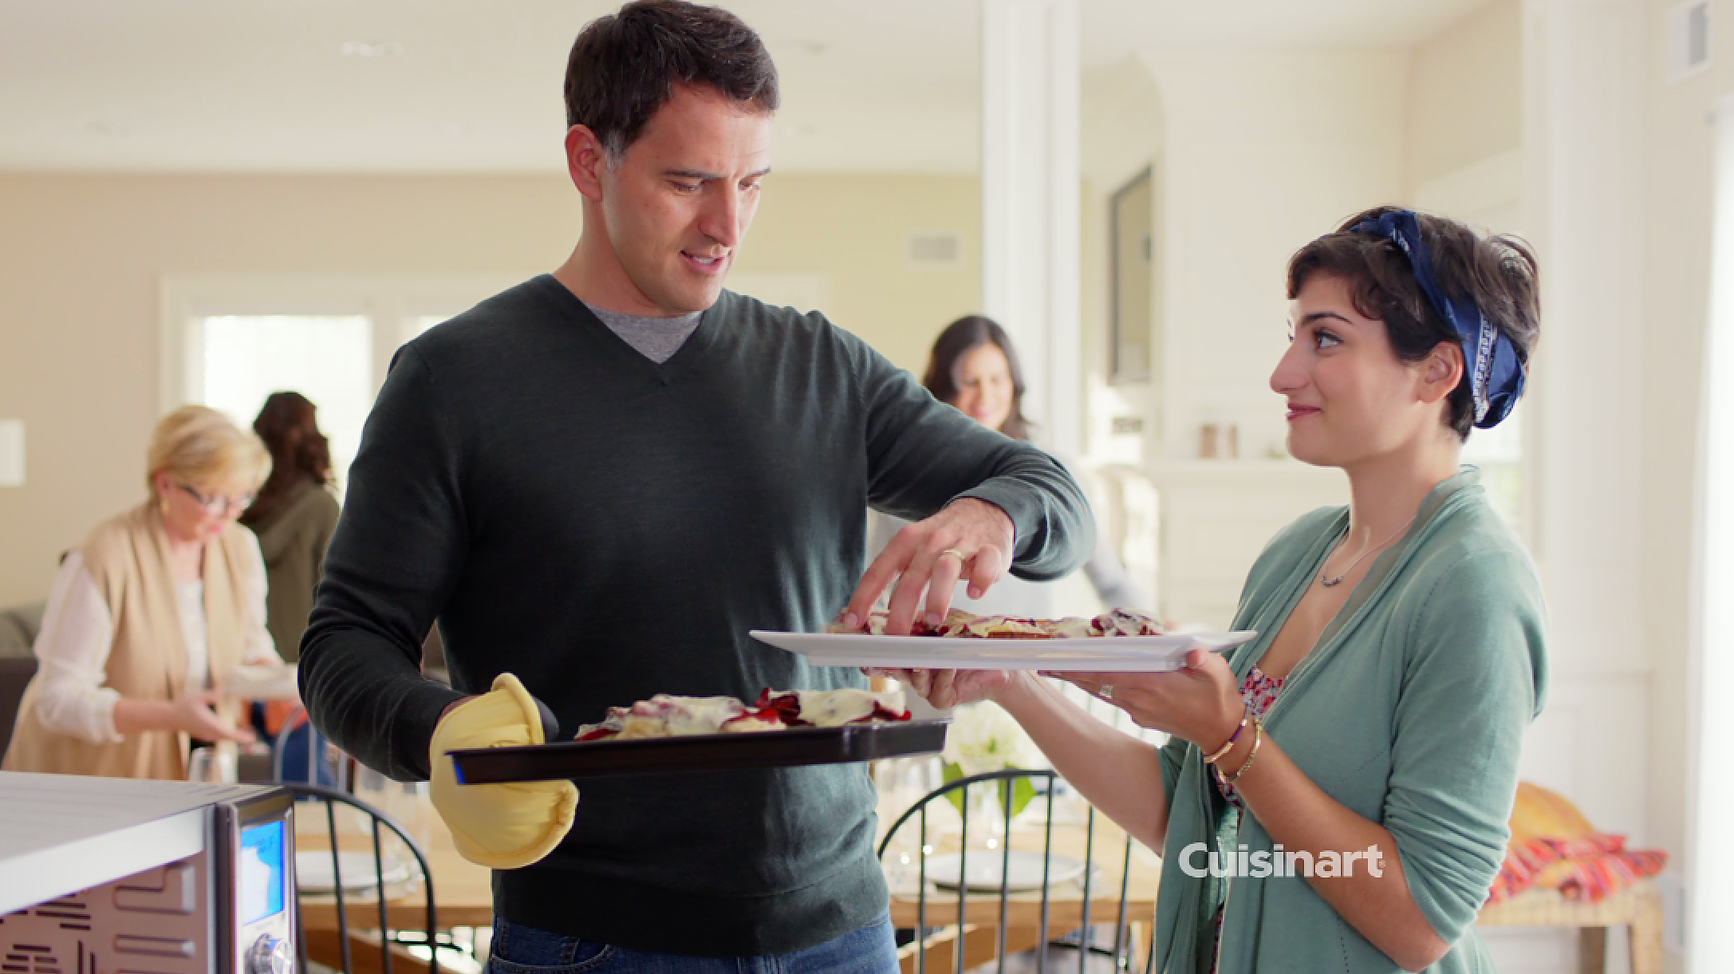 Cuisinart National Commercial